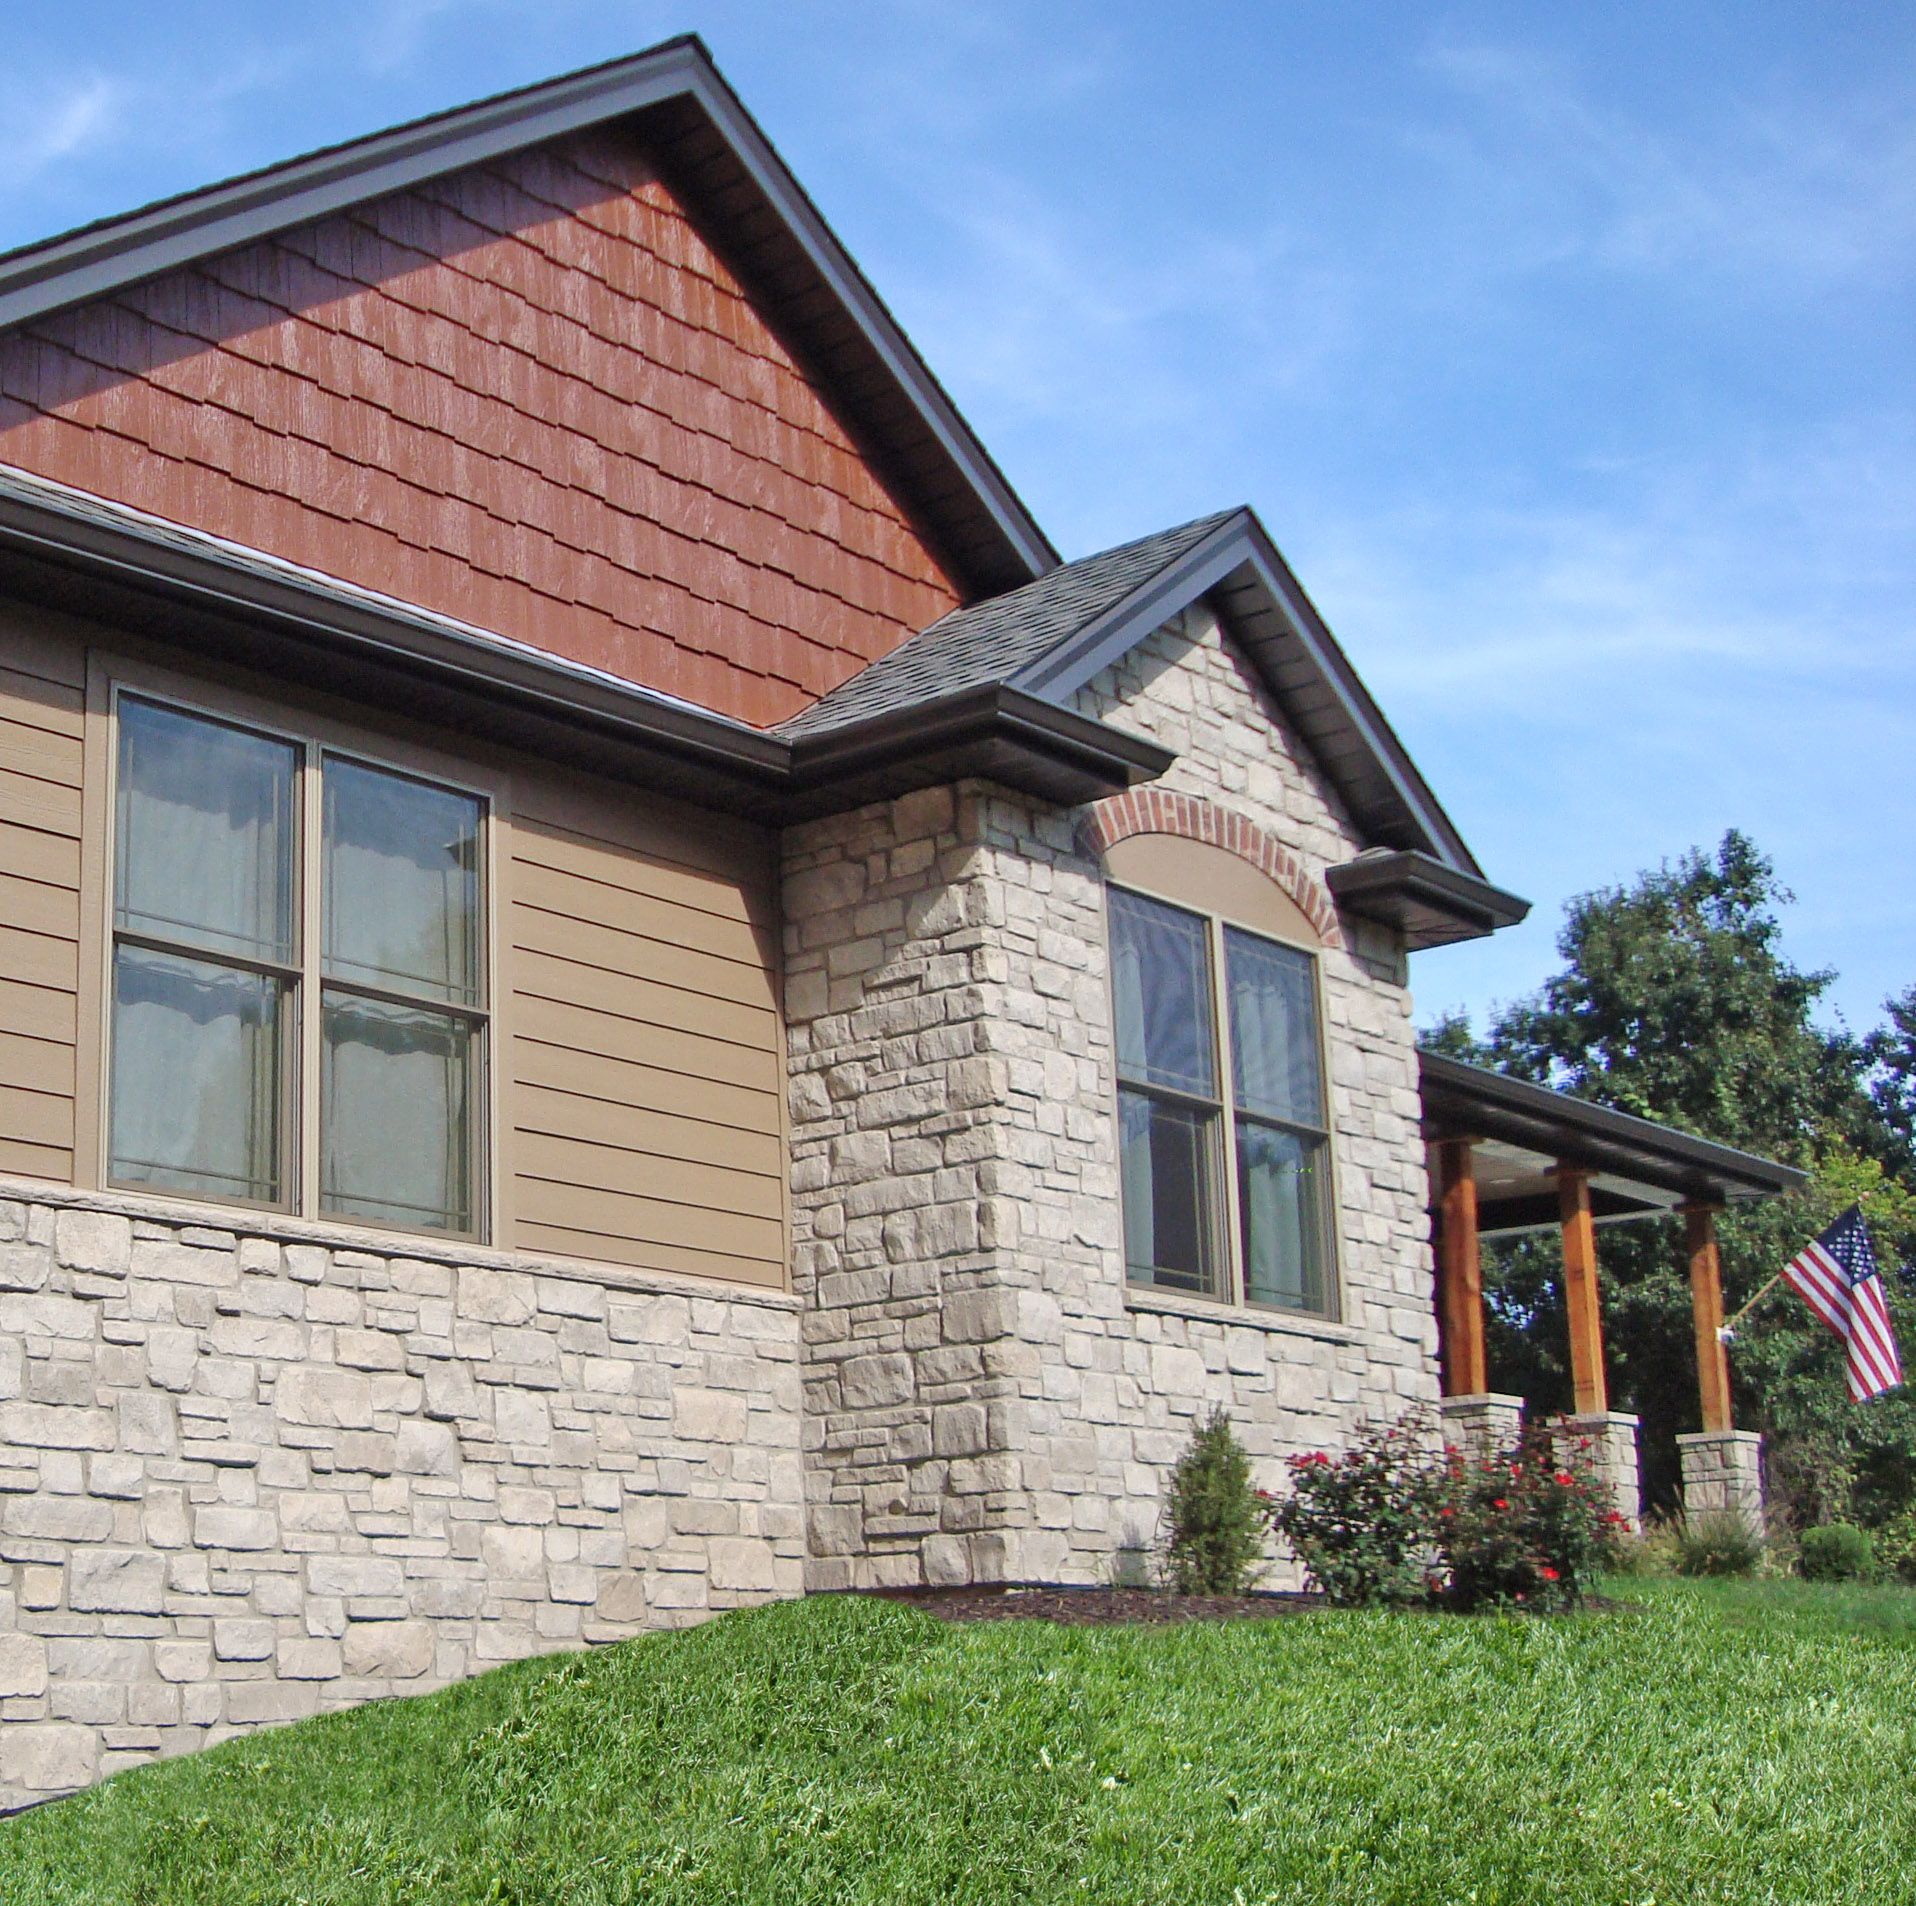 Lake Home Siding Ideas: This House Features Siding And Trim In Diamond Kote French